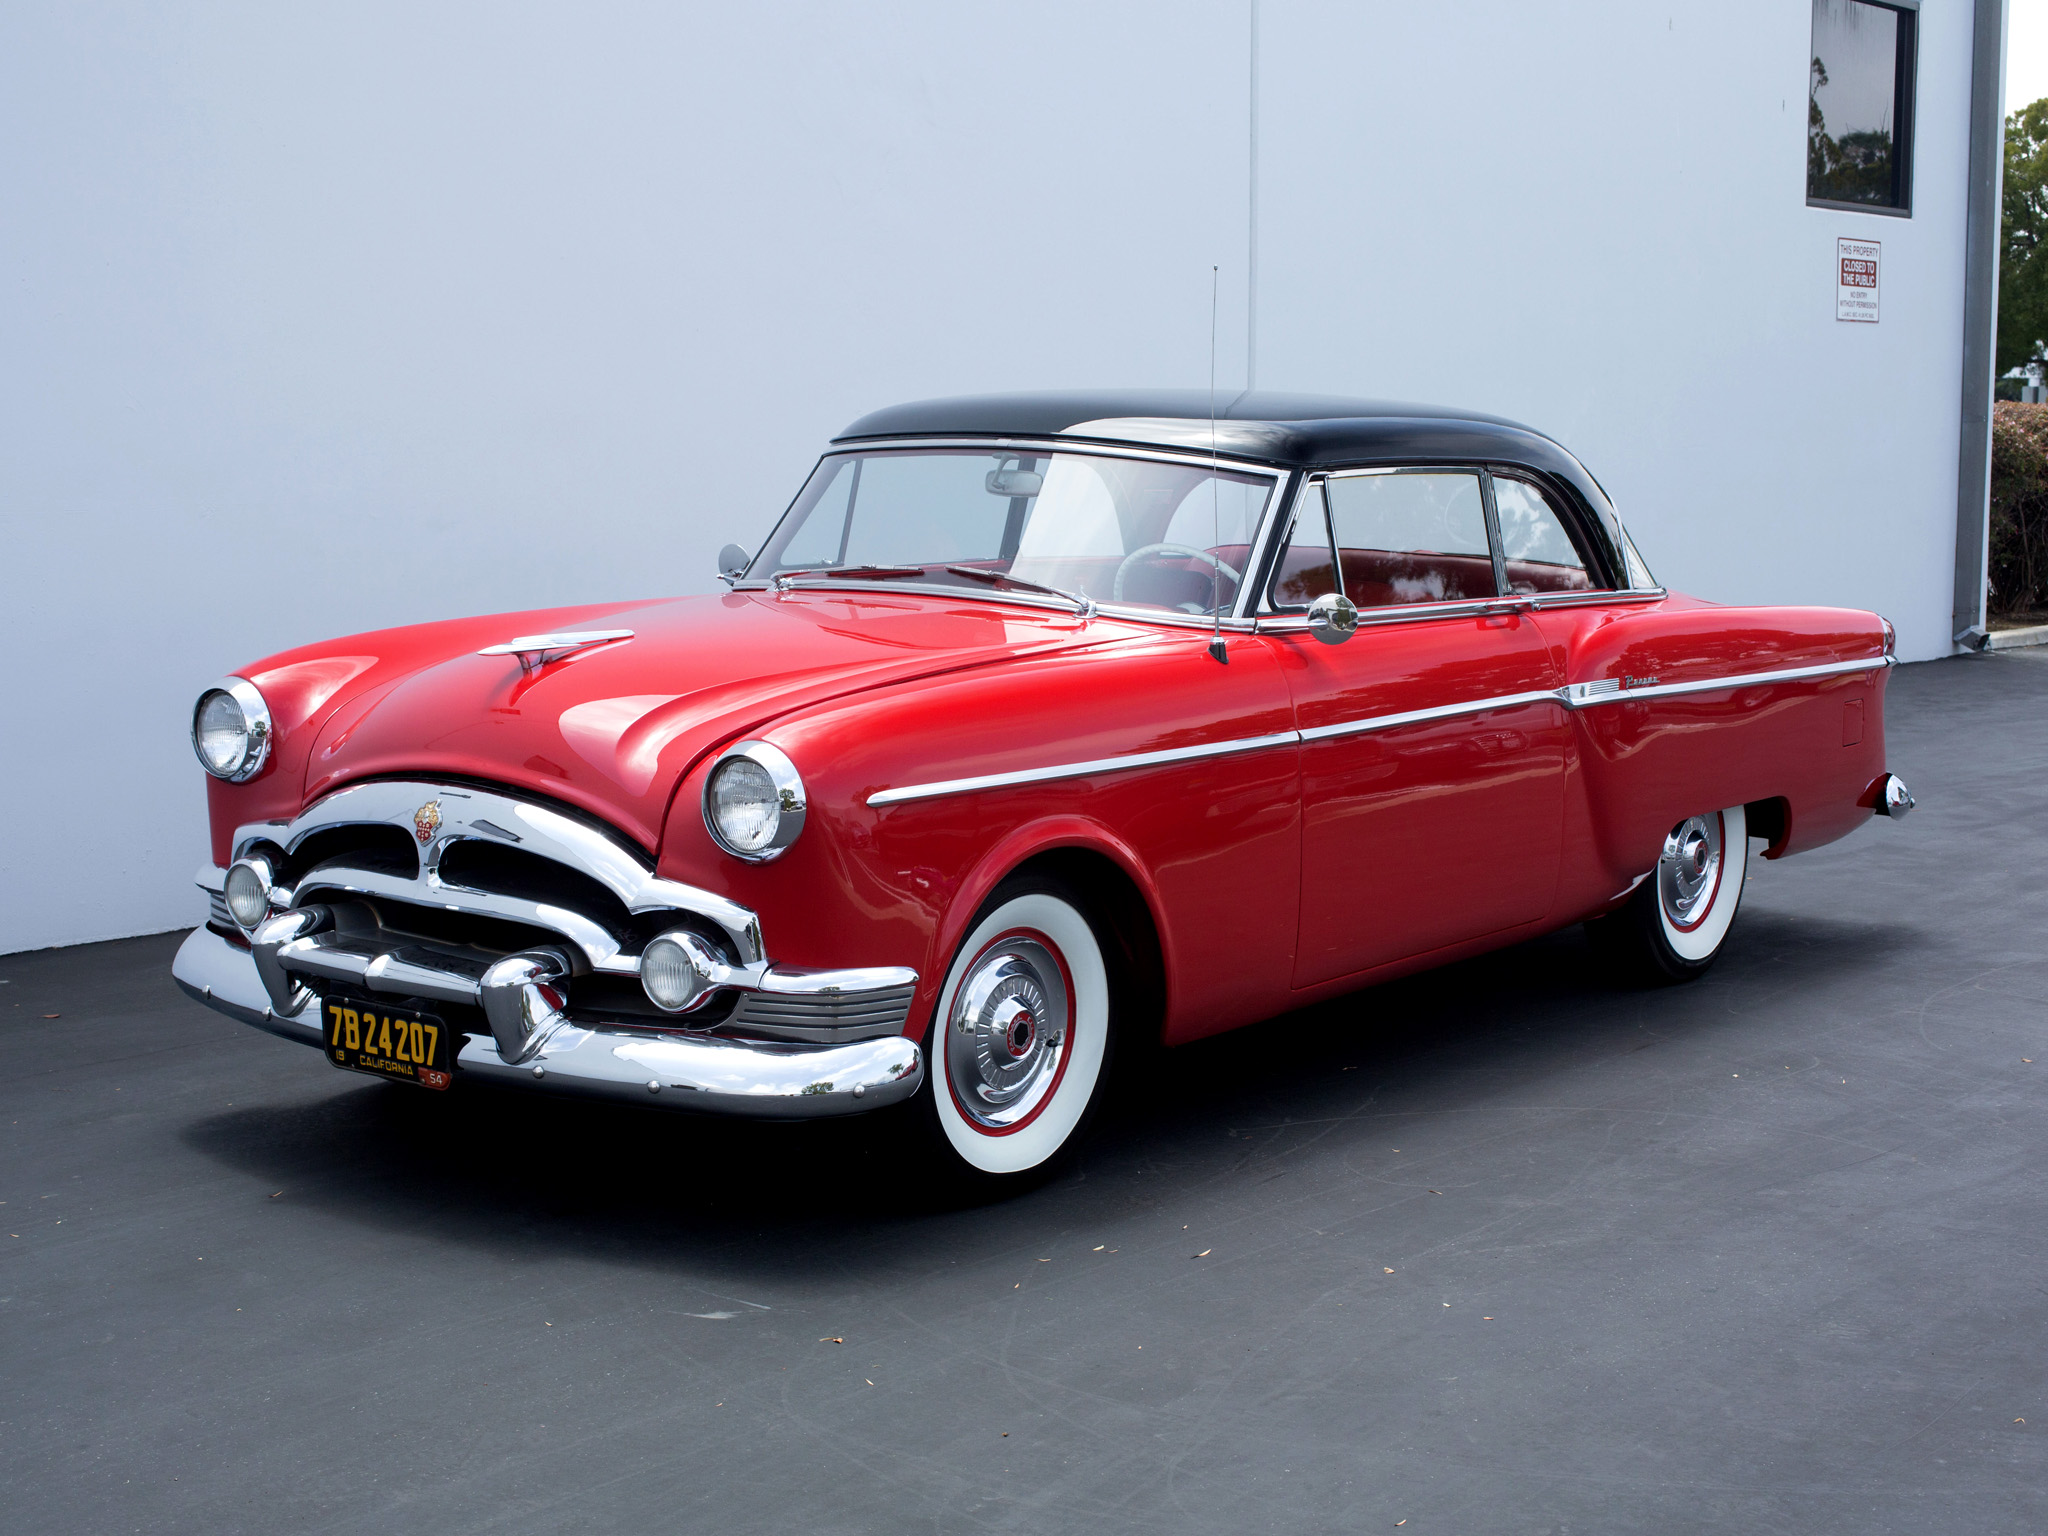 Car Wallpapers Hd 2013 Free Download 1954 Packard Super Clipper Panama Hardtop Coupe 5411 5467